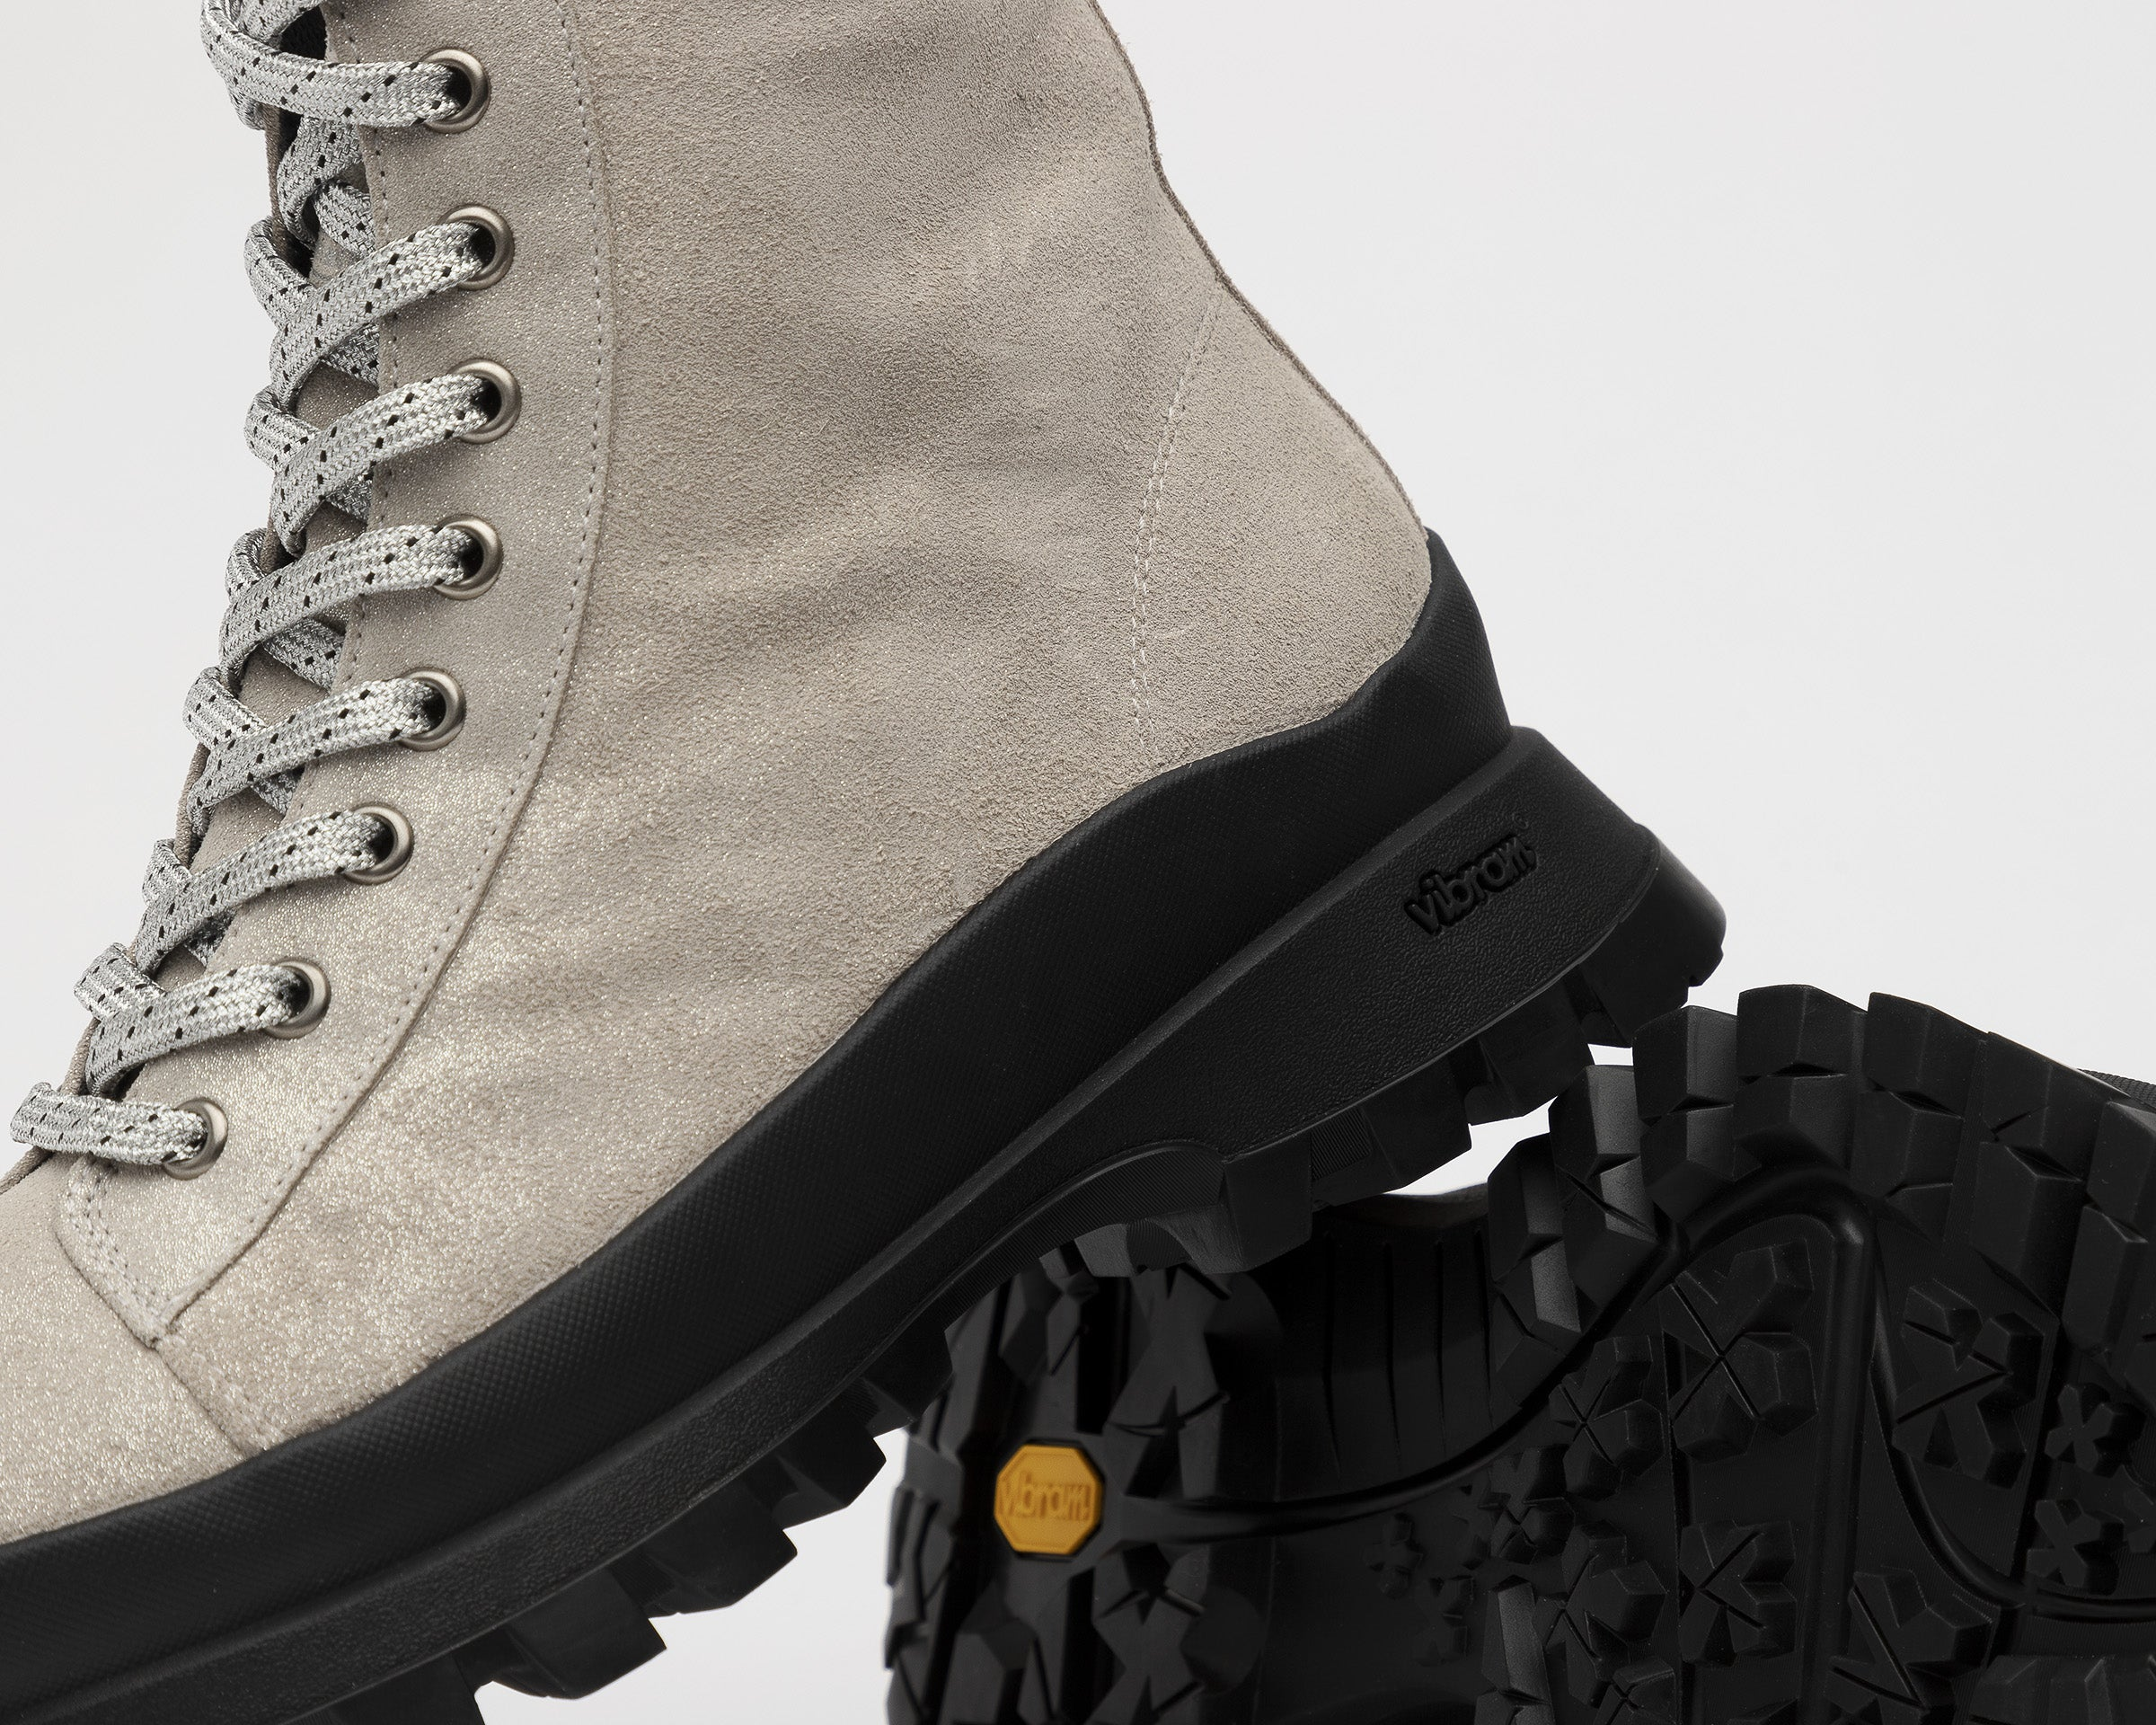 Denise Combat Boot with Vibram bottom in Spark - Detail 2